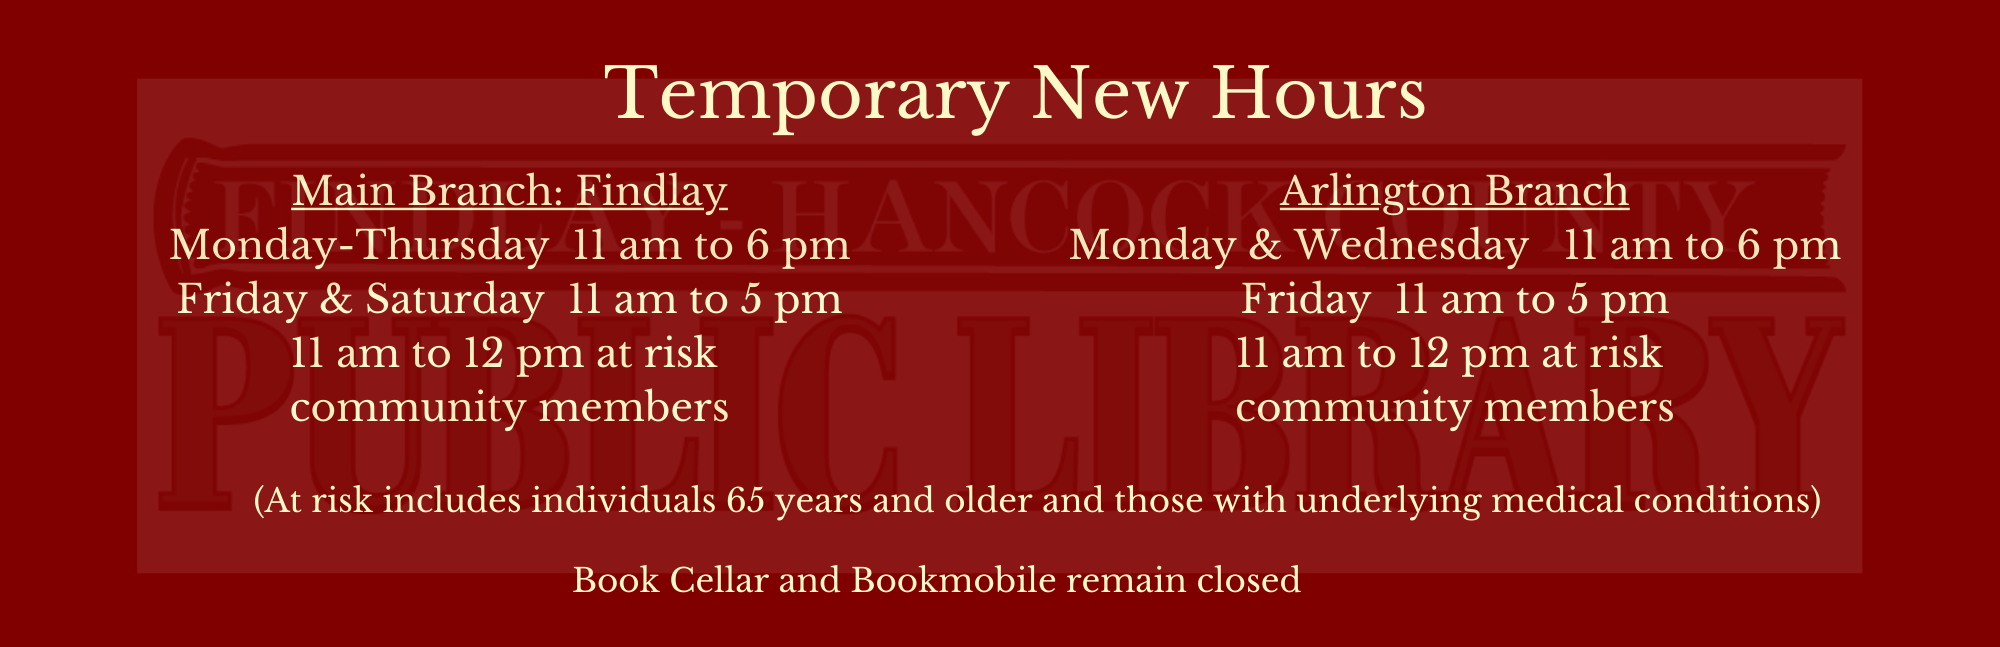 temporary new hours until returning to normal business